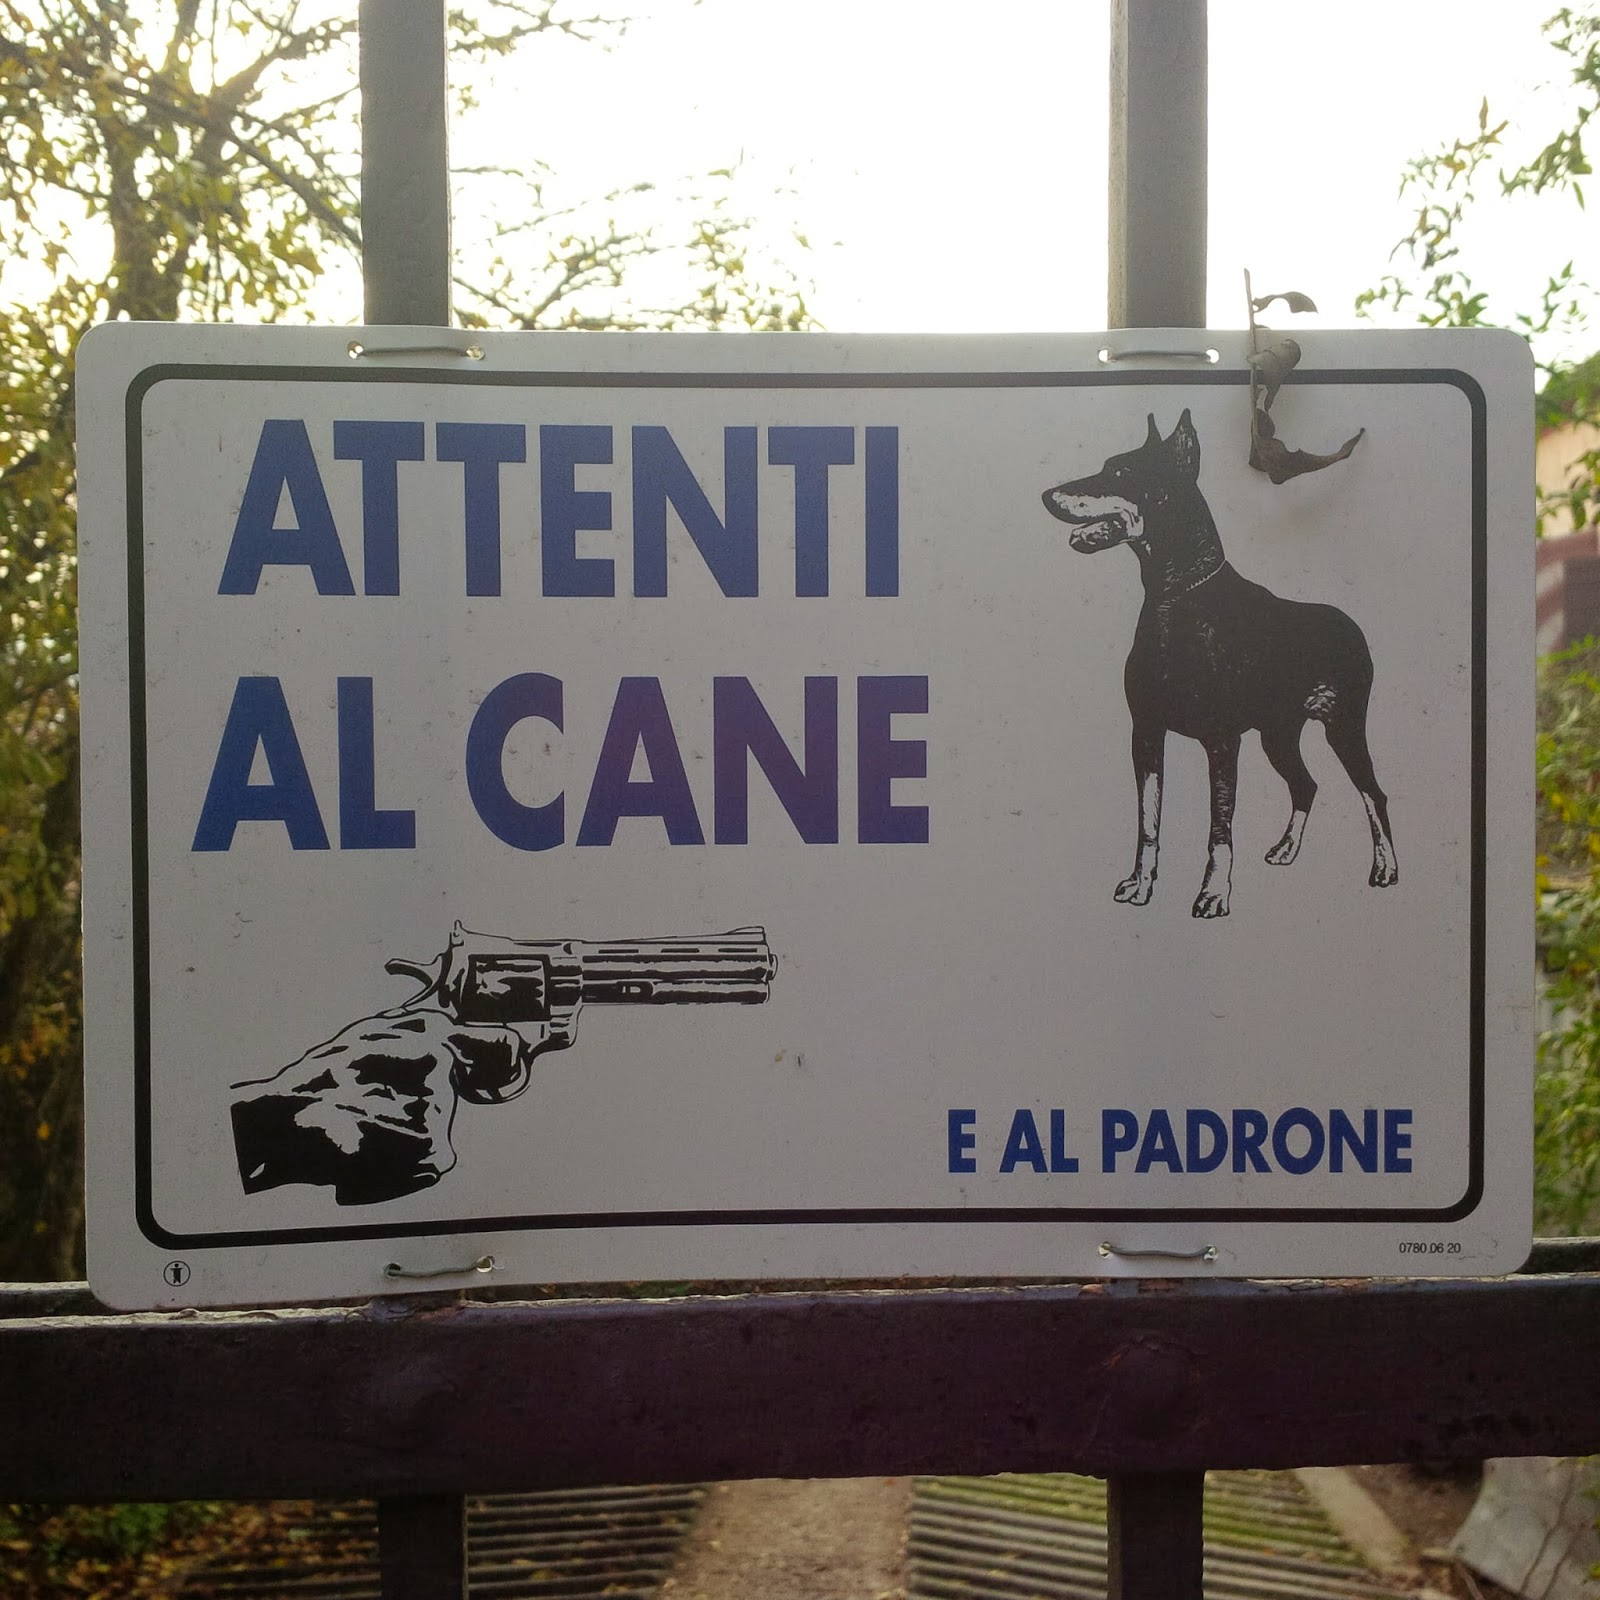 A warning attached to the gate of a house in Arqua Petrarca